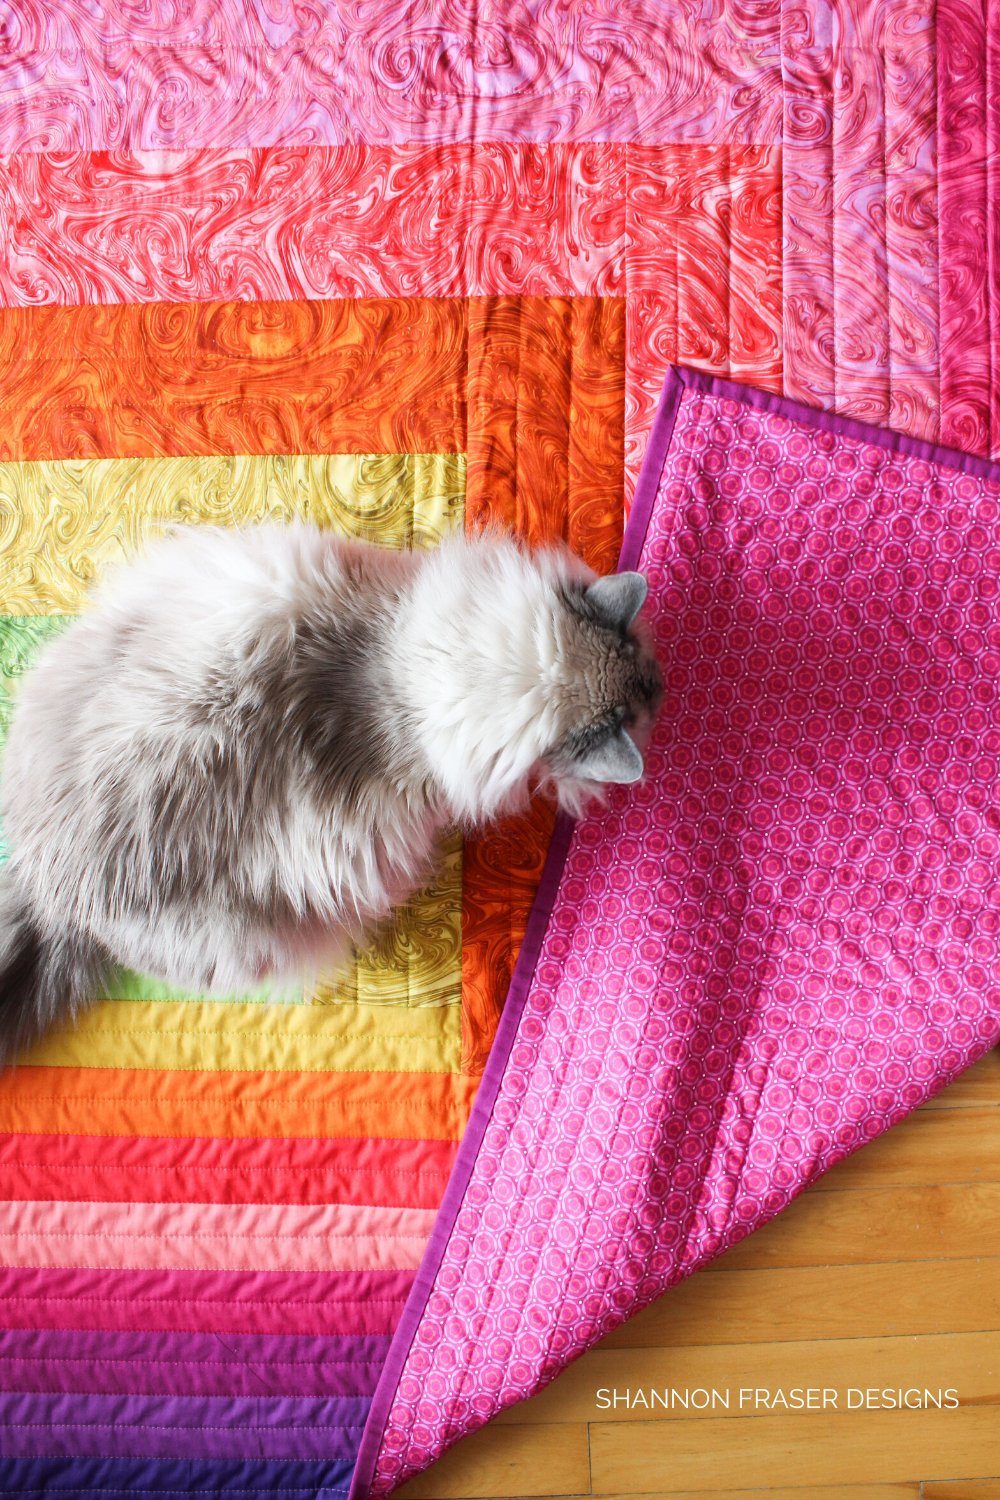 White ragdoll (Pips) on the Reverberance quilt - modern log cabin | How to safely remove pet hair from your quilts | Shannon Fraser Designs #logcabinquilt